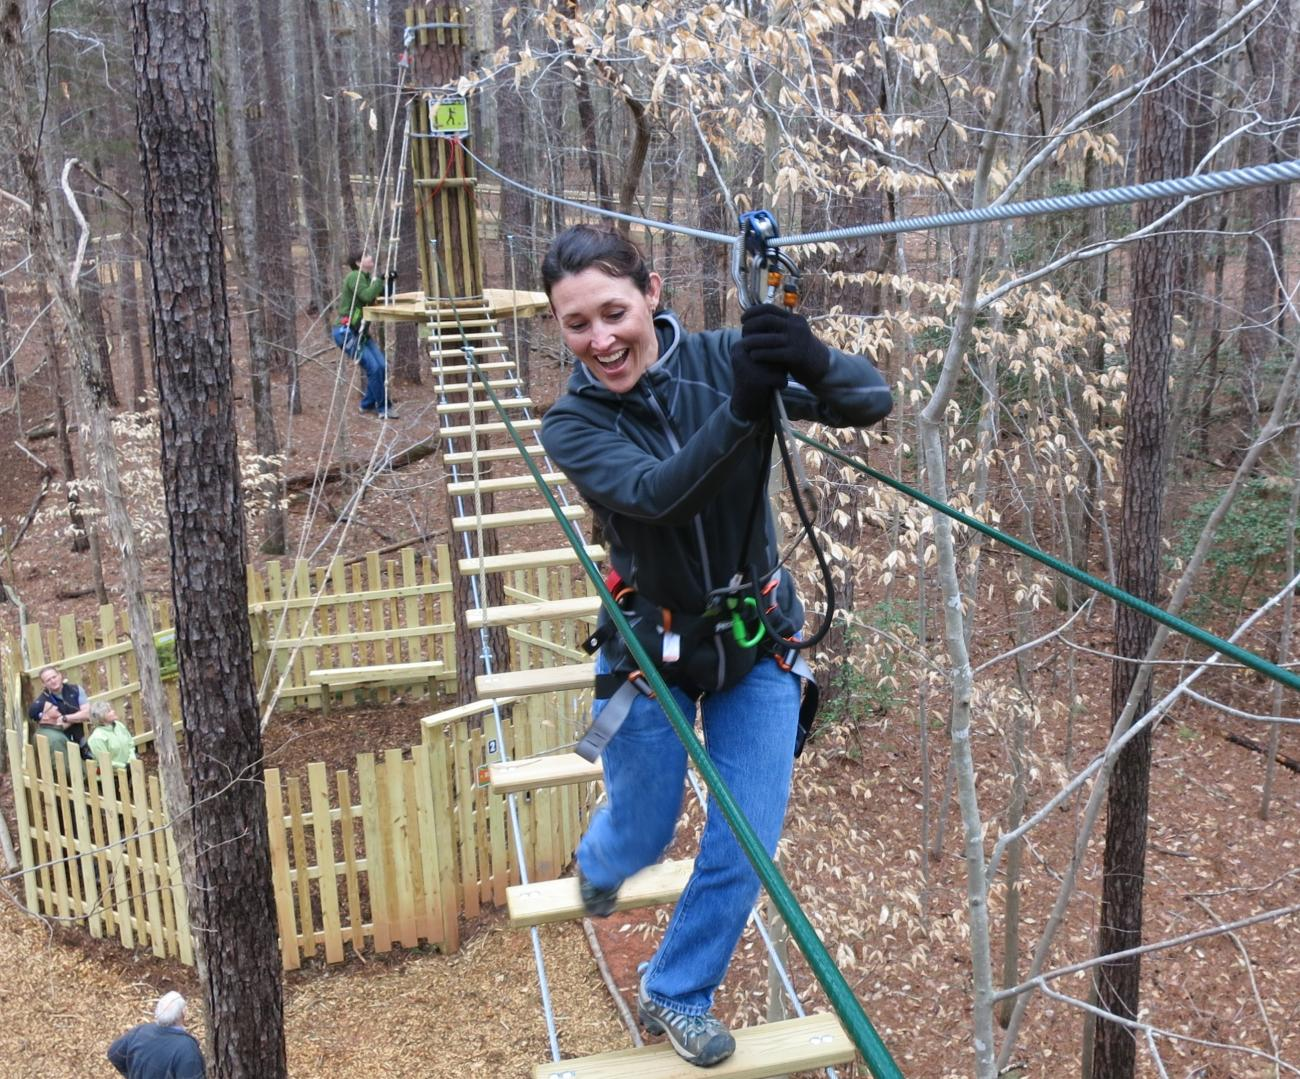 image of a woman making her way across an aerial rope obstacle 30 feet up in the trees